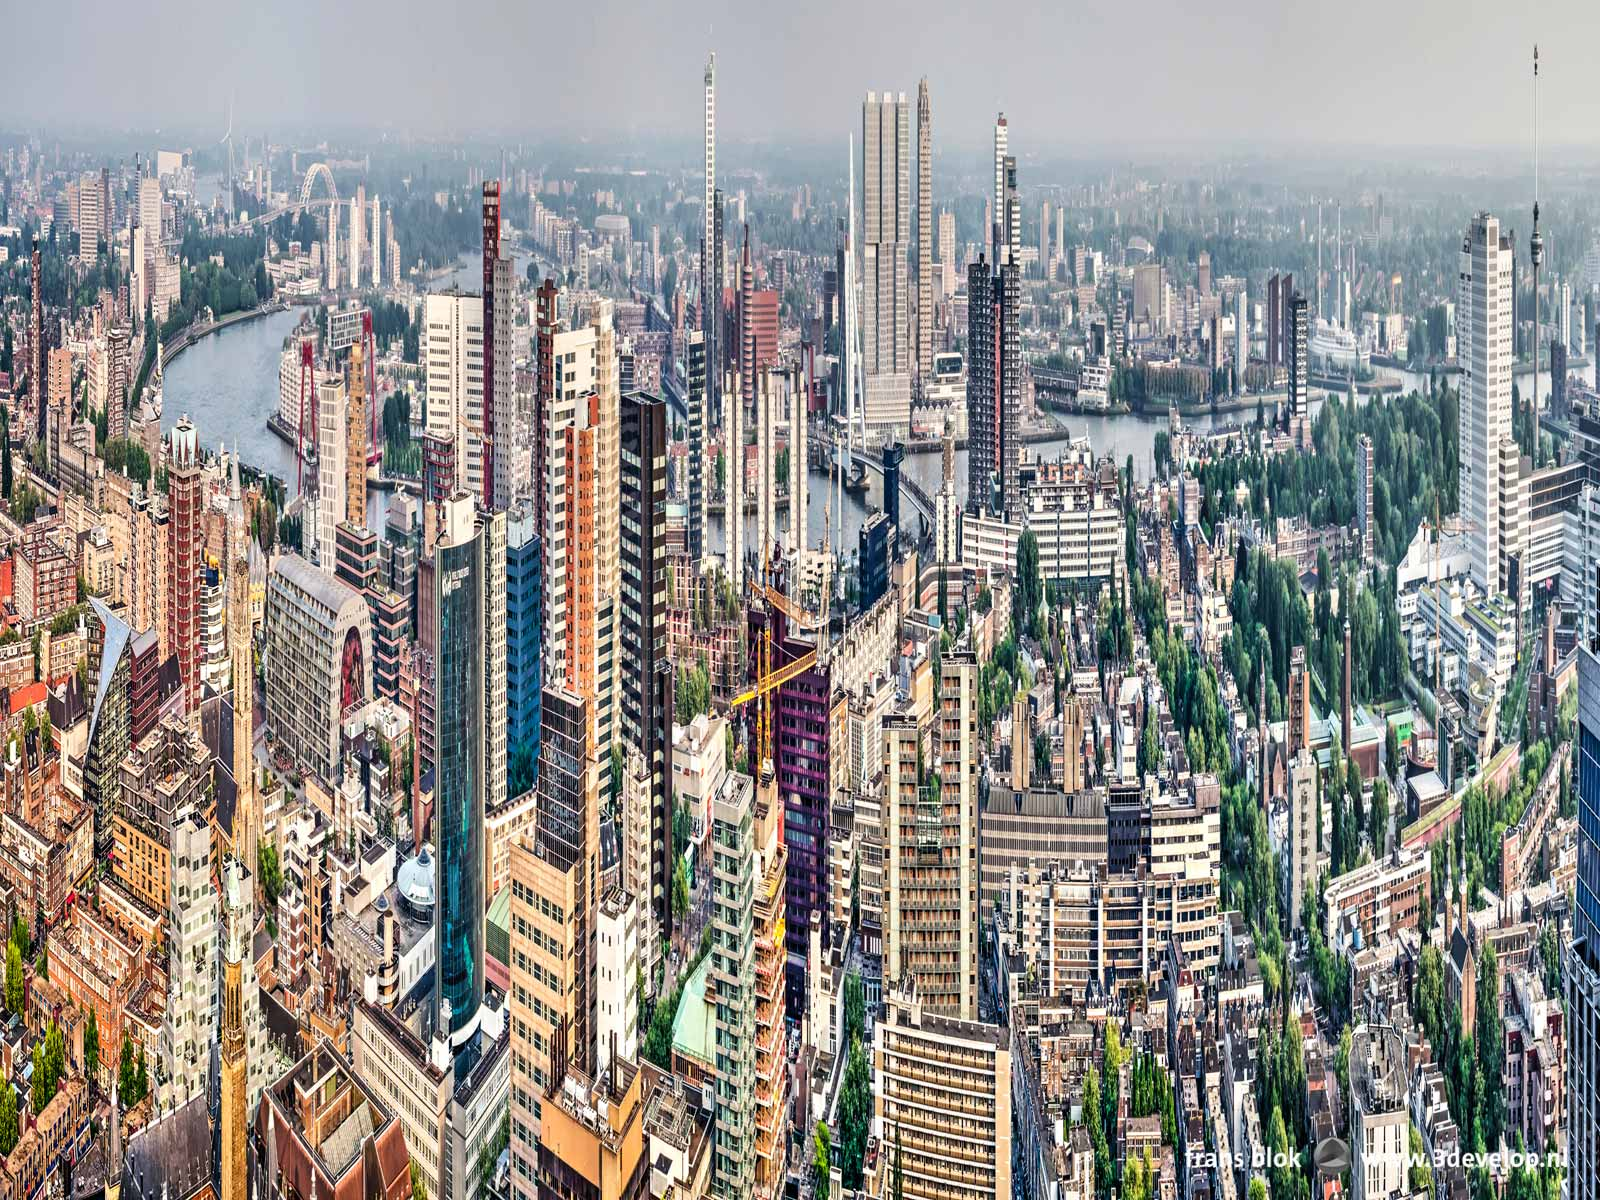 Stretched panorama of downtown Rotterdam, resulting in a Hong Kong-like image